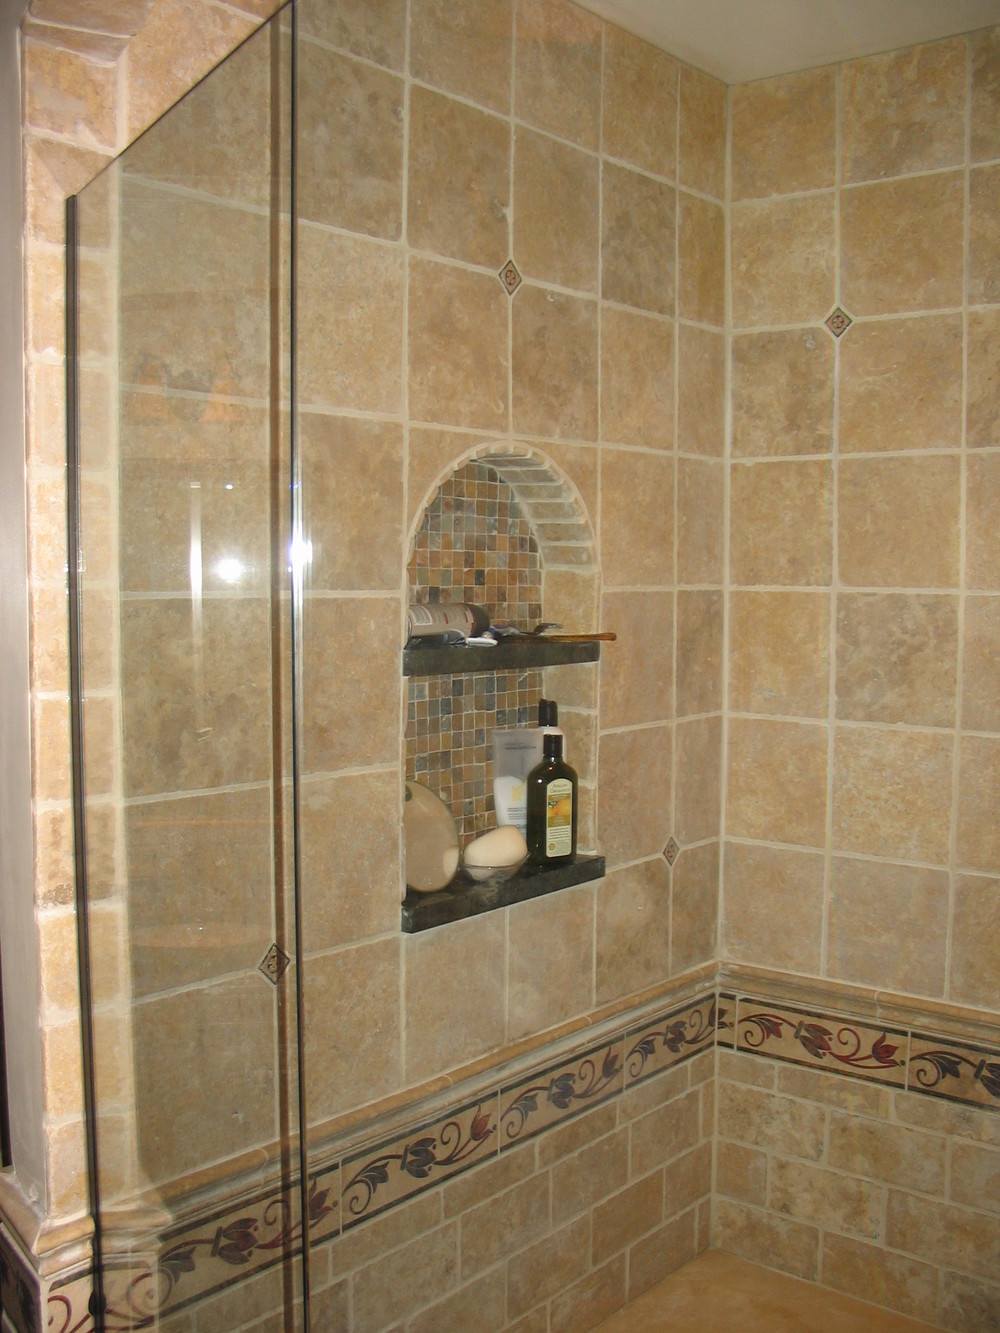 Travertine Tile With Decorative Border Throughout Entire